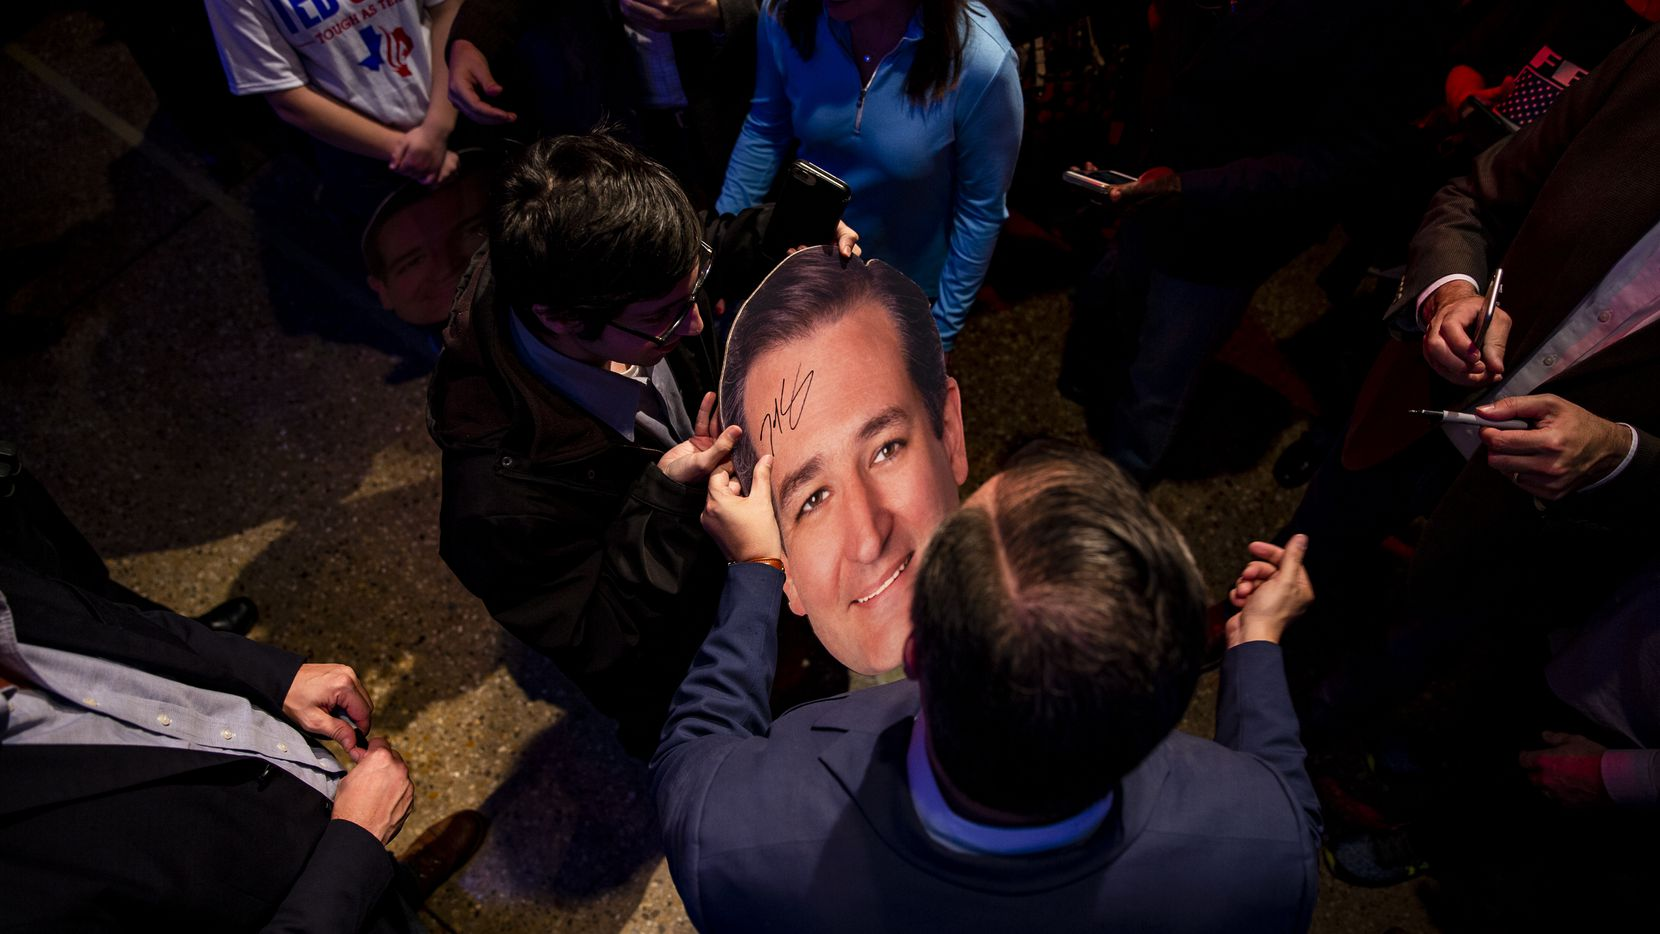 Senator Ted Cruz signs a cutout of his head following a campaign rally at Cendera Center in Ft. Worth on Friday, November 2, 2018. (Shaban Athuman/The Dallas Morning News)